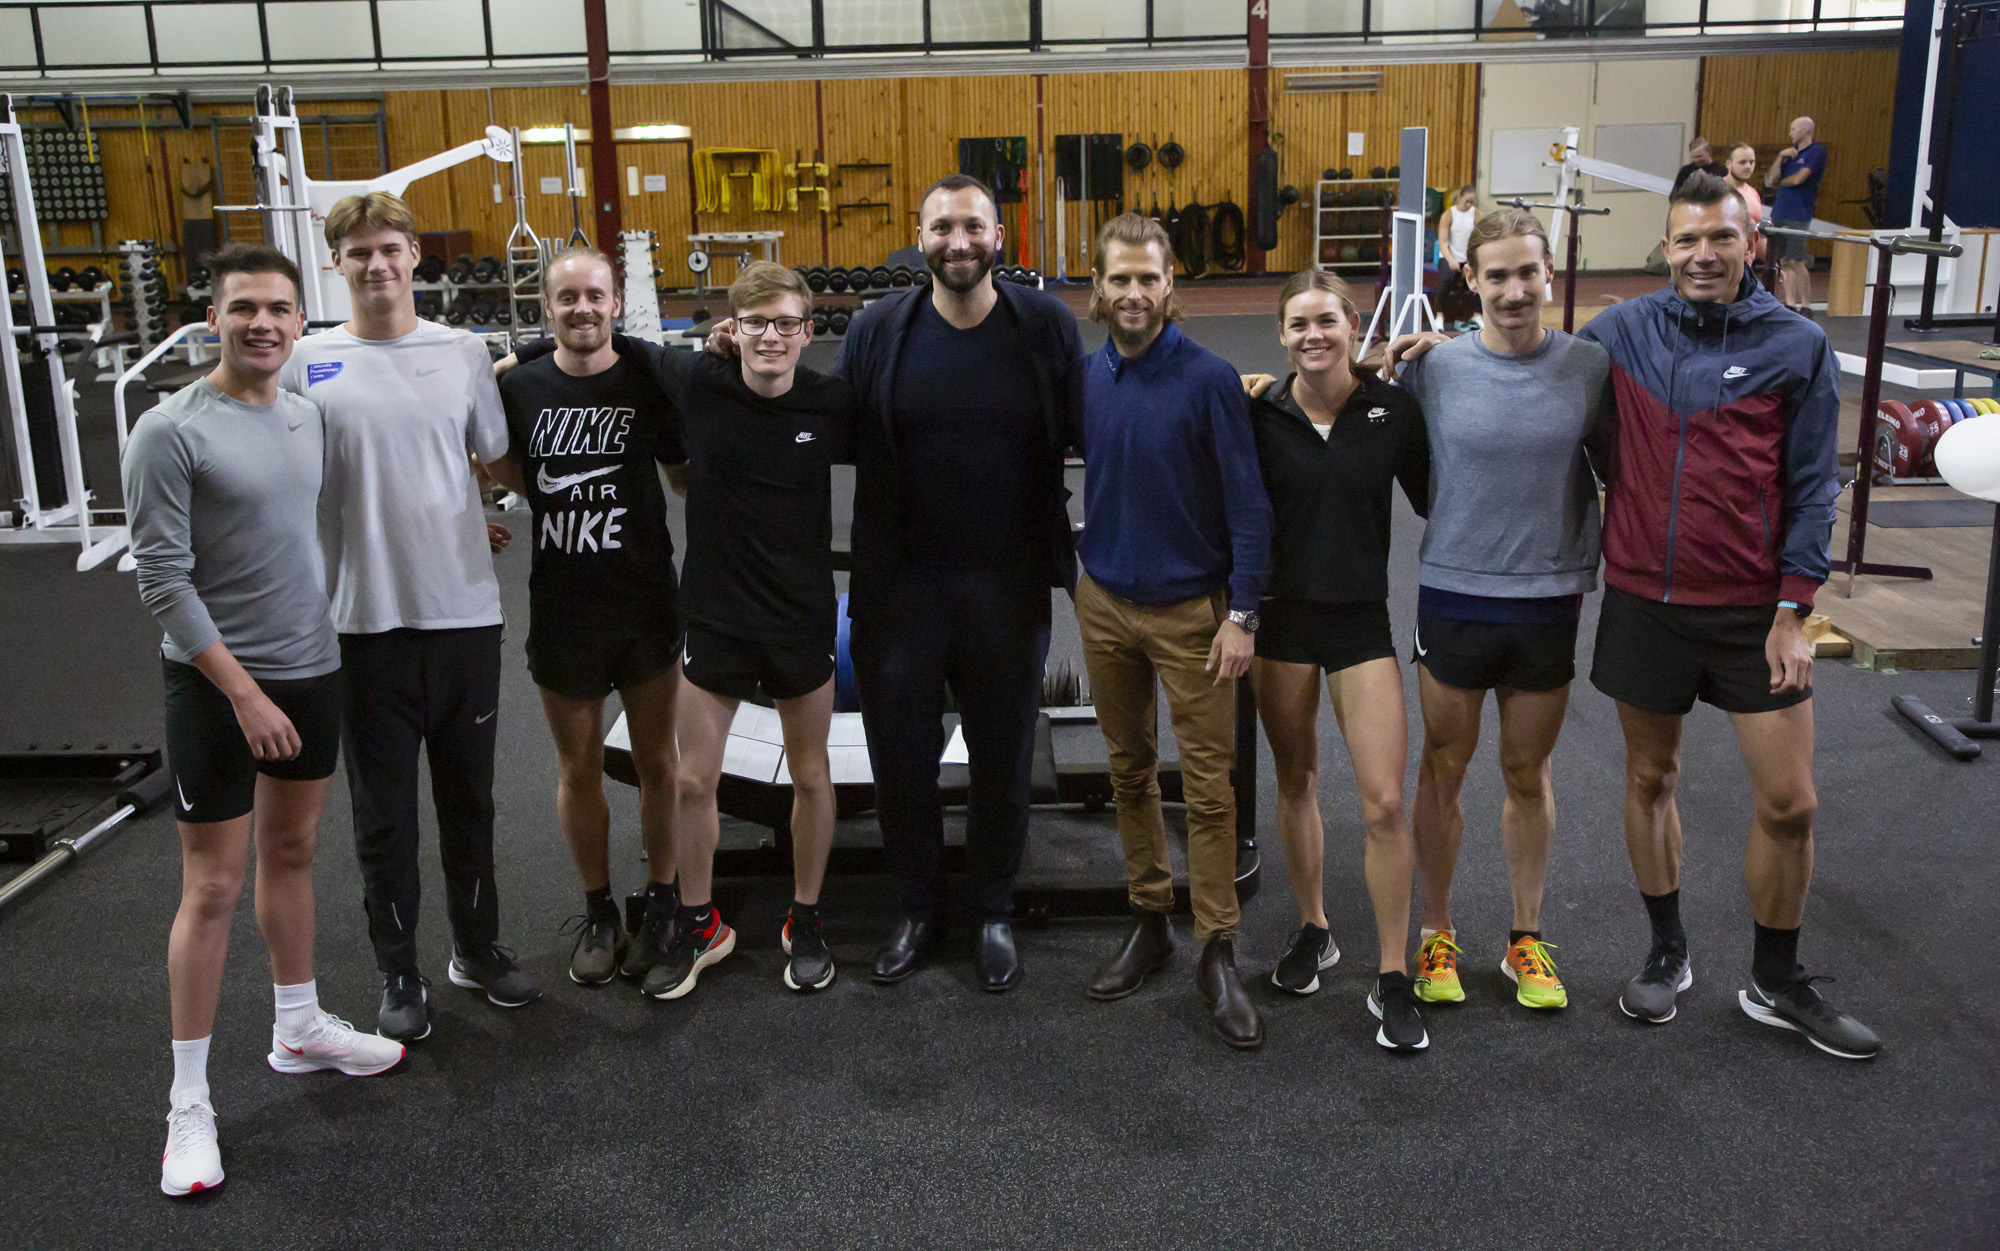 Thorpe with the AIS-based athletics squad